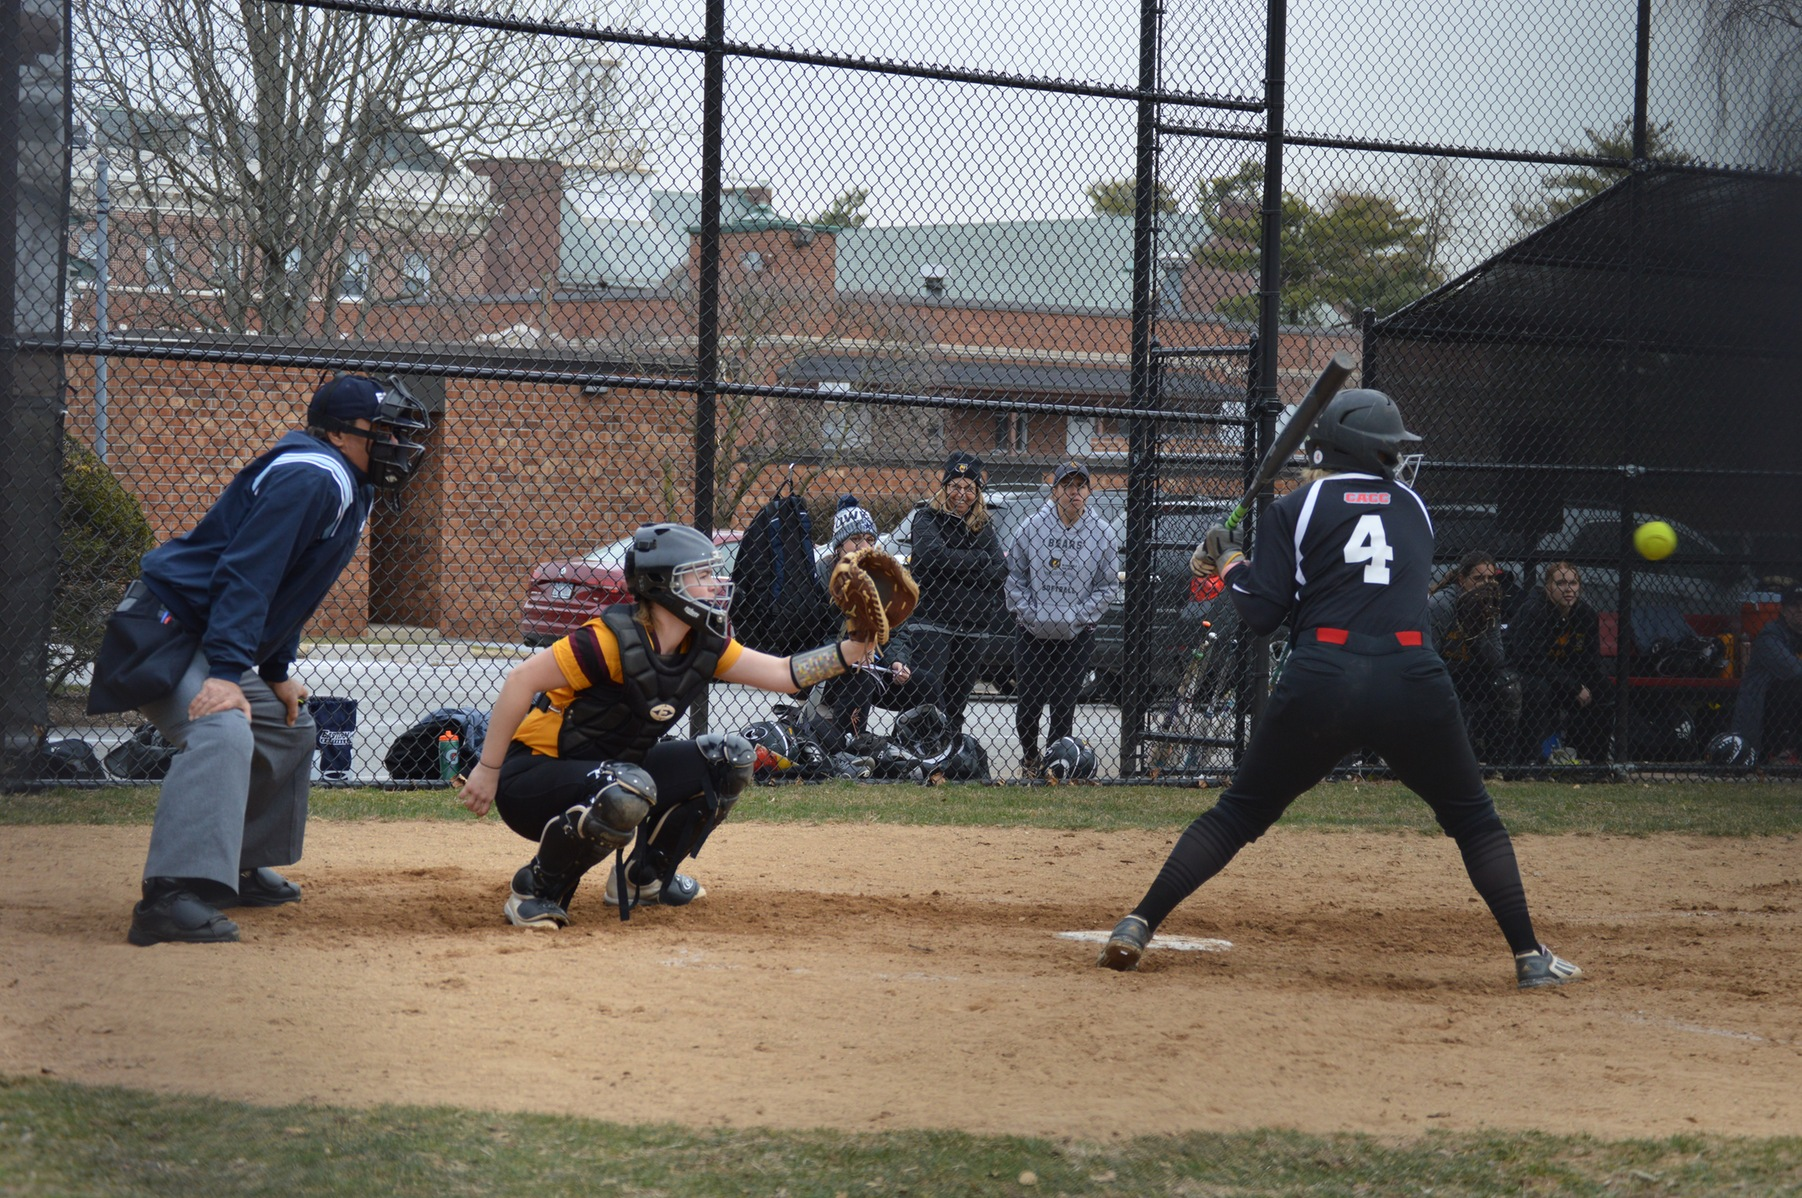 The Dominican College softball team swept Post University 13-8 and 4-2 this afternoon in CACC games.